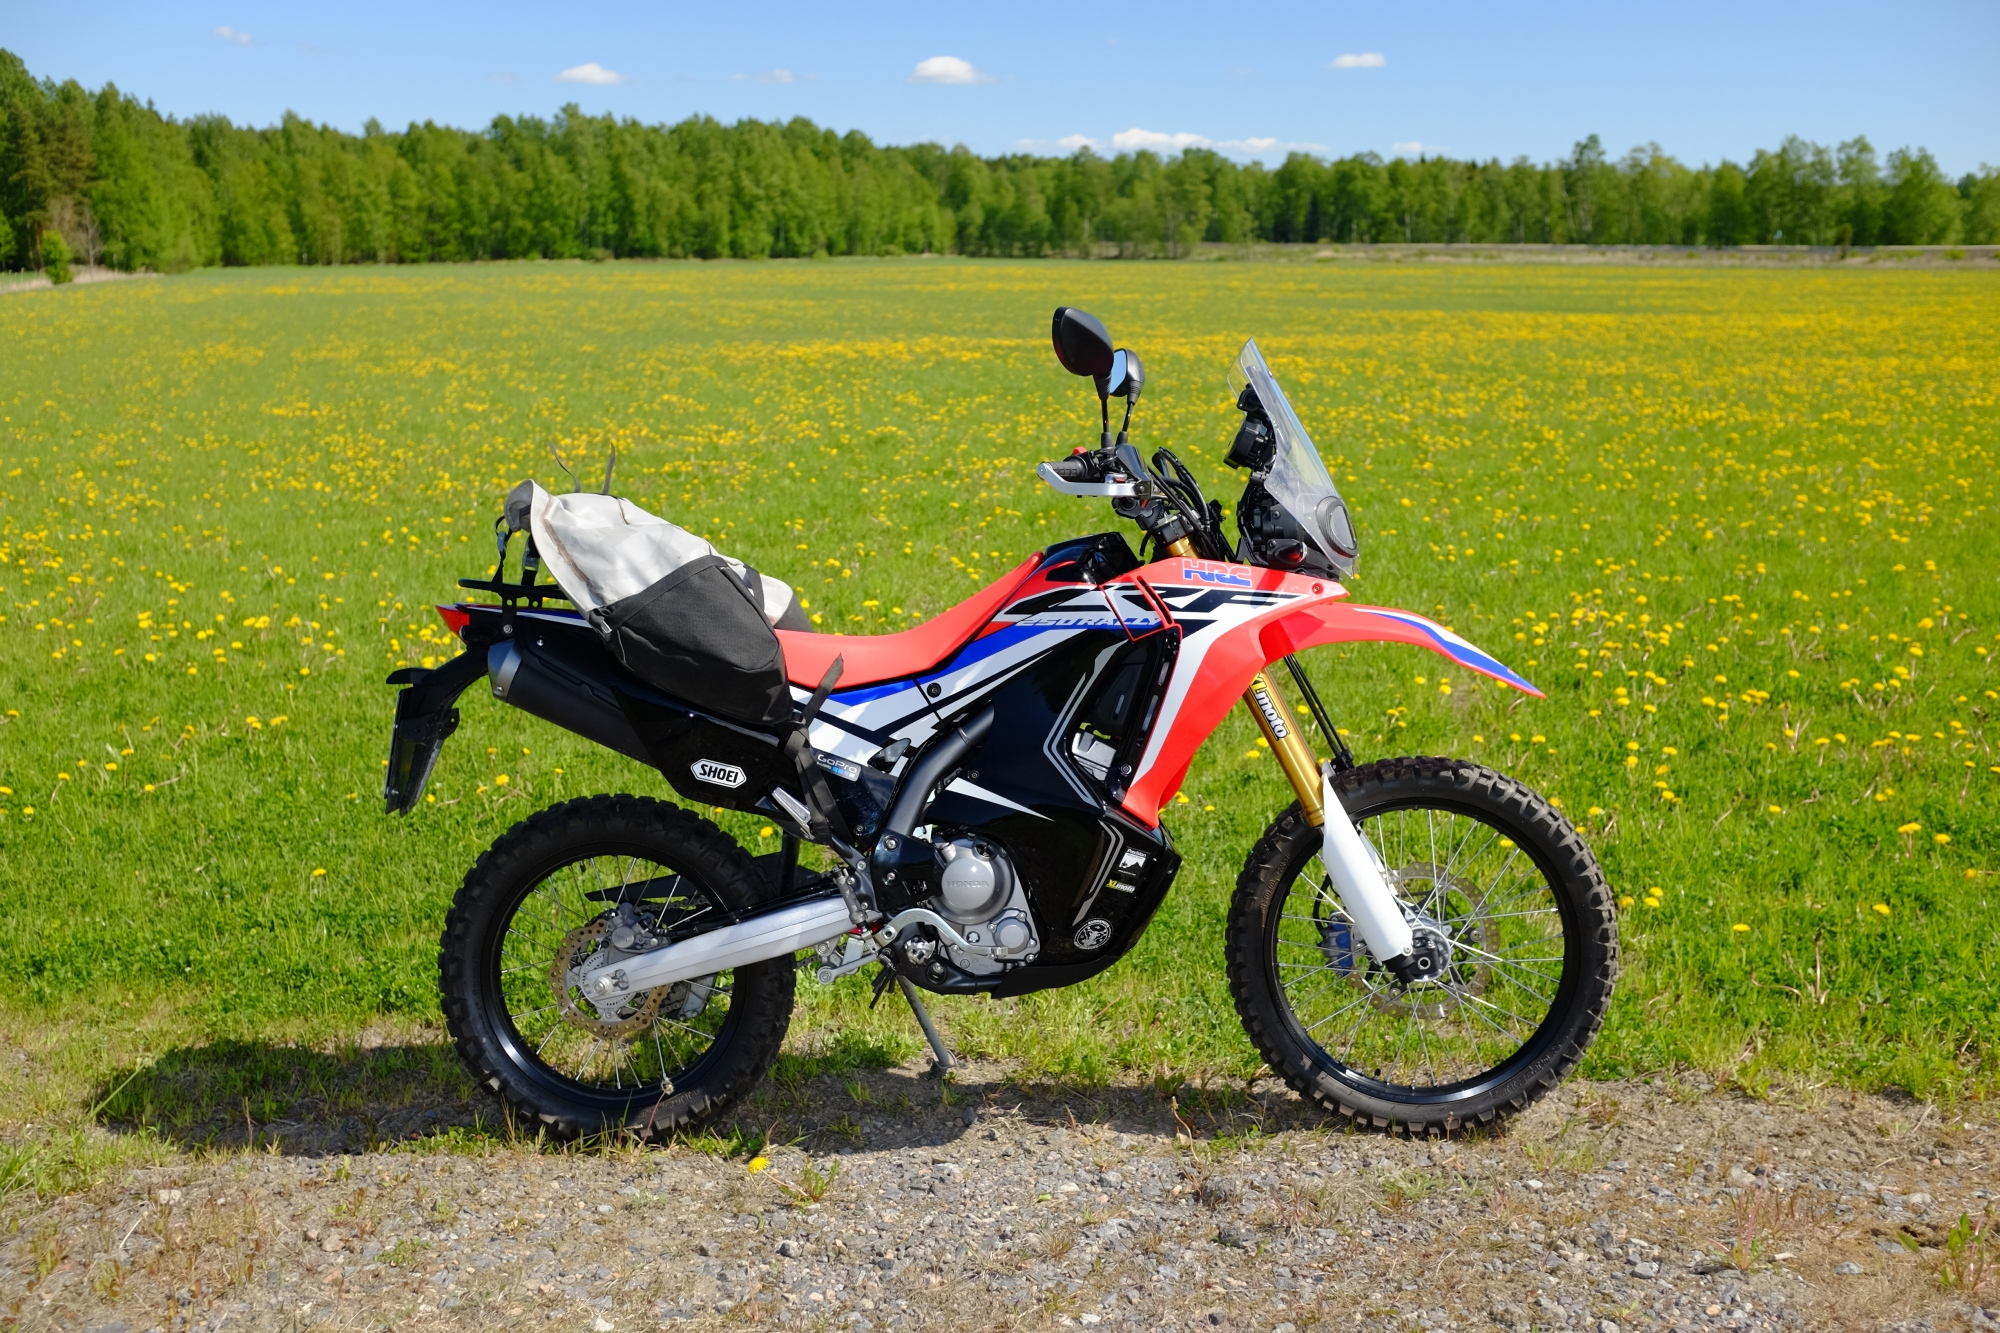 Giant Loop saddlebag on Honda CRF 250 Rally